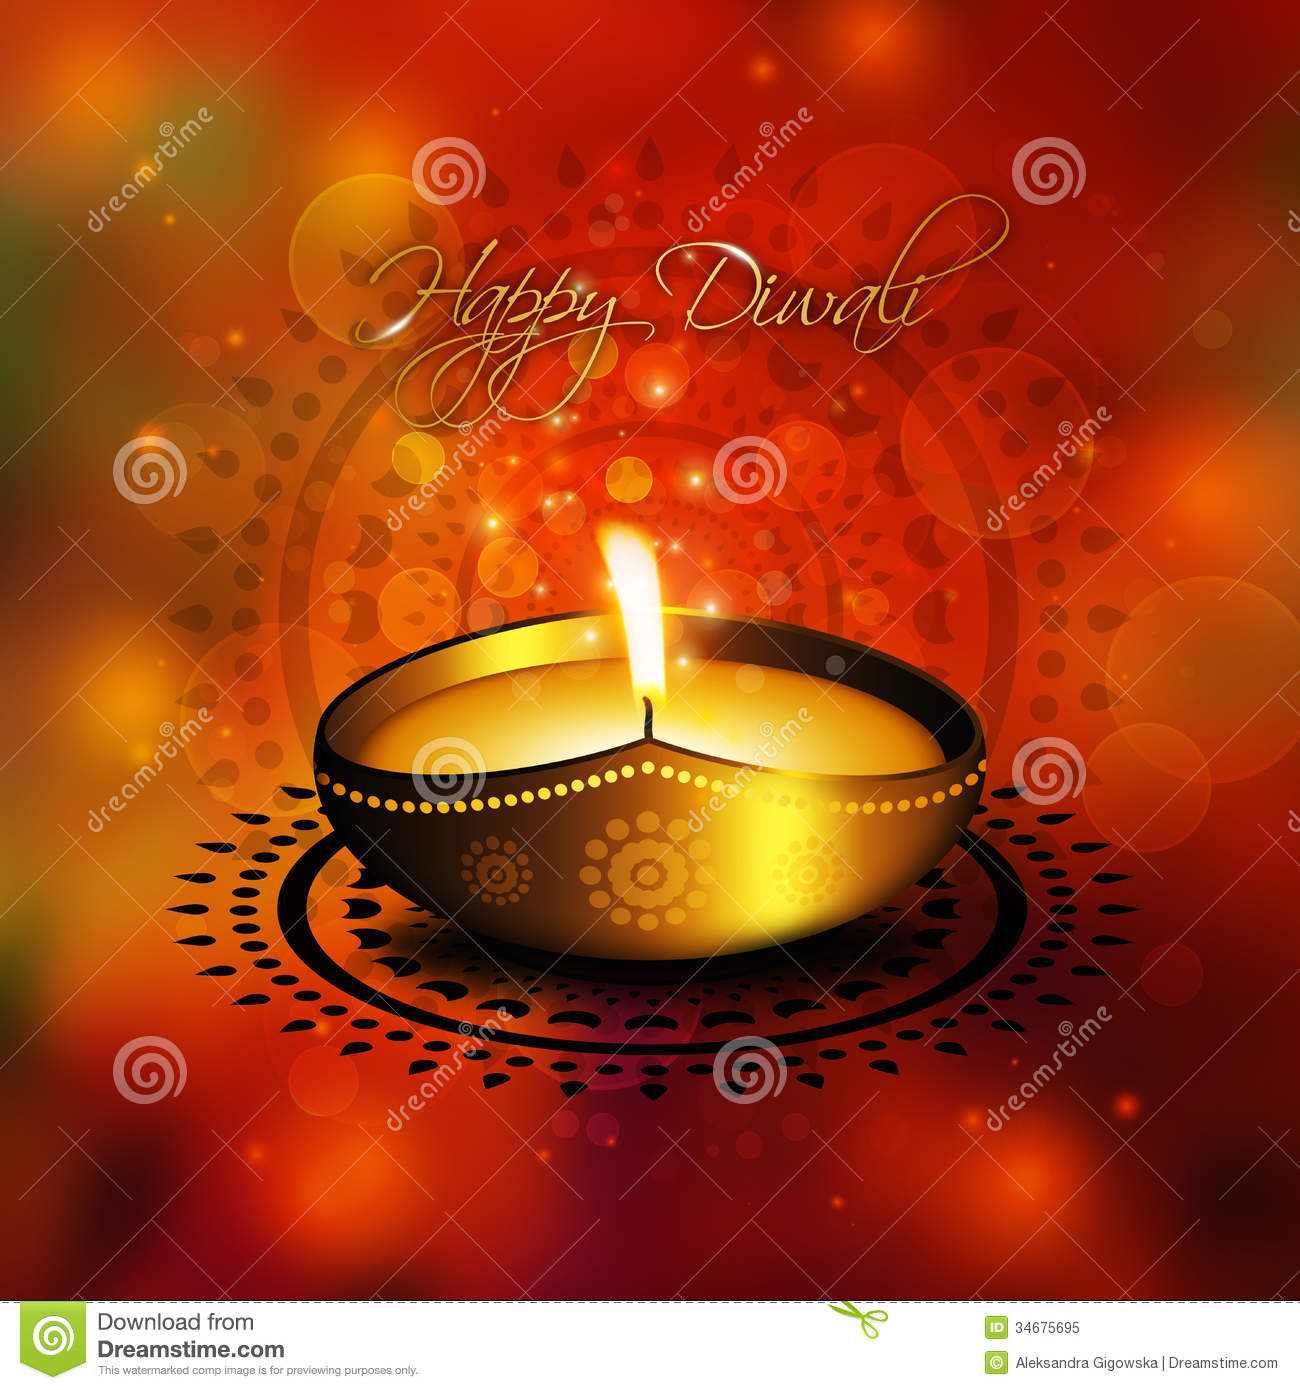 Diwali Greetings In Gujarati Language Stock Vector Illustration Of